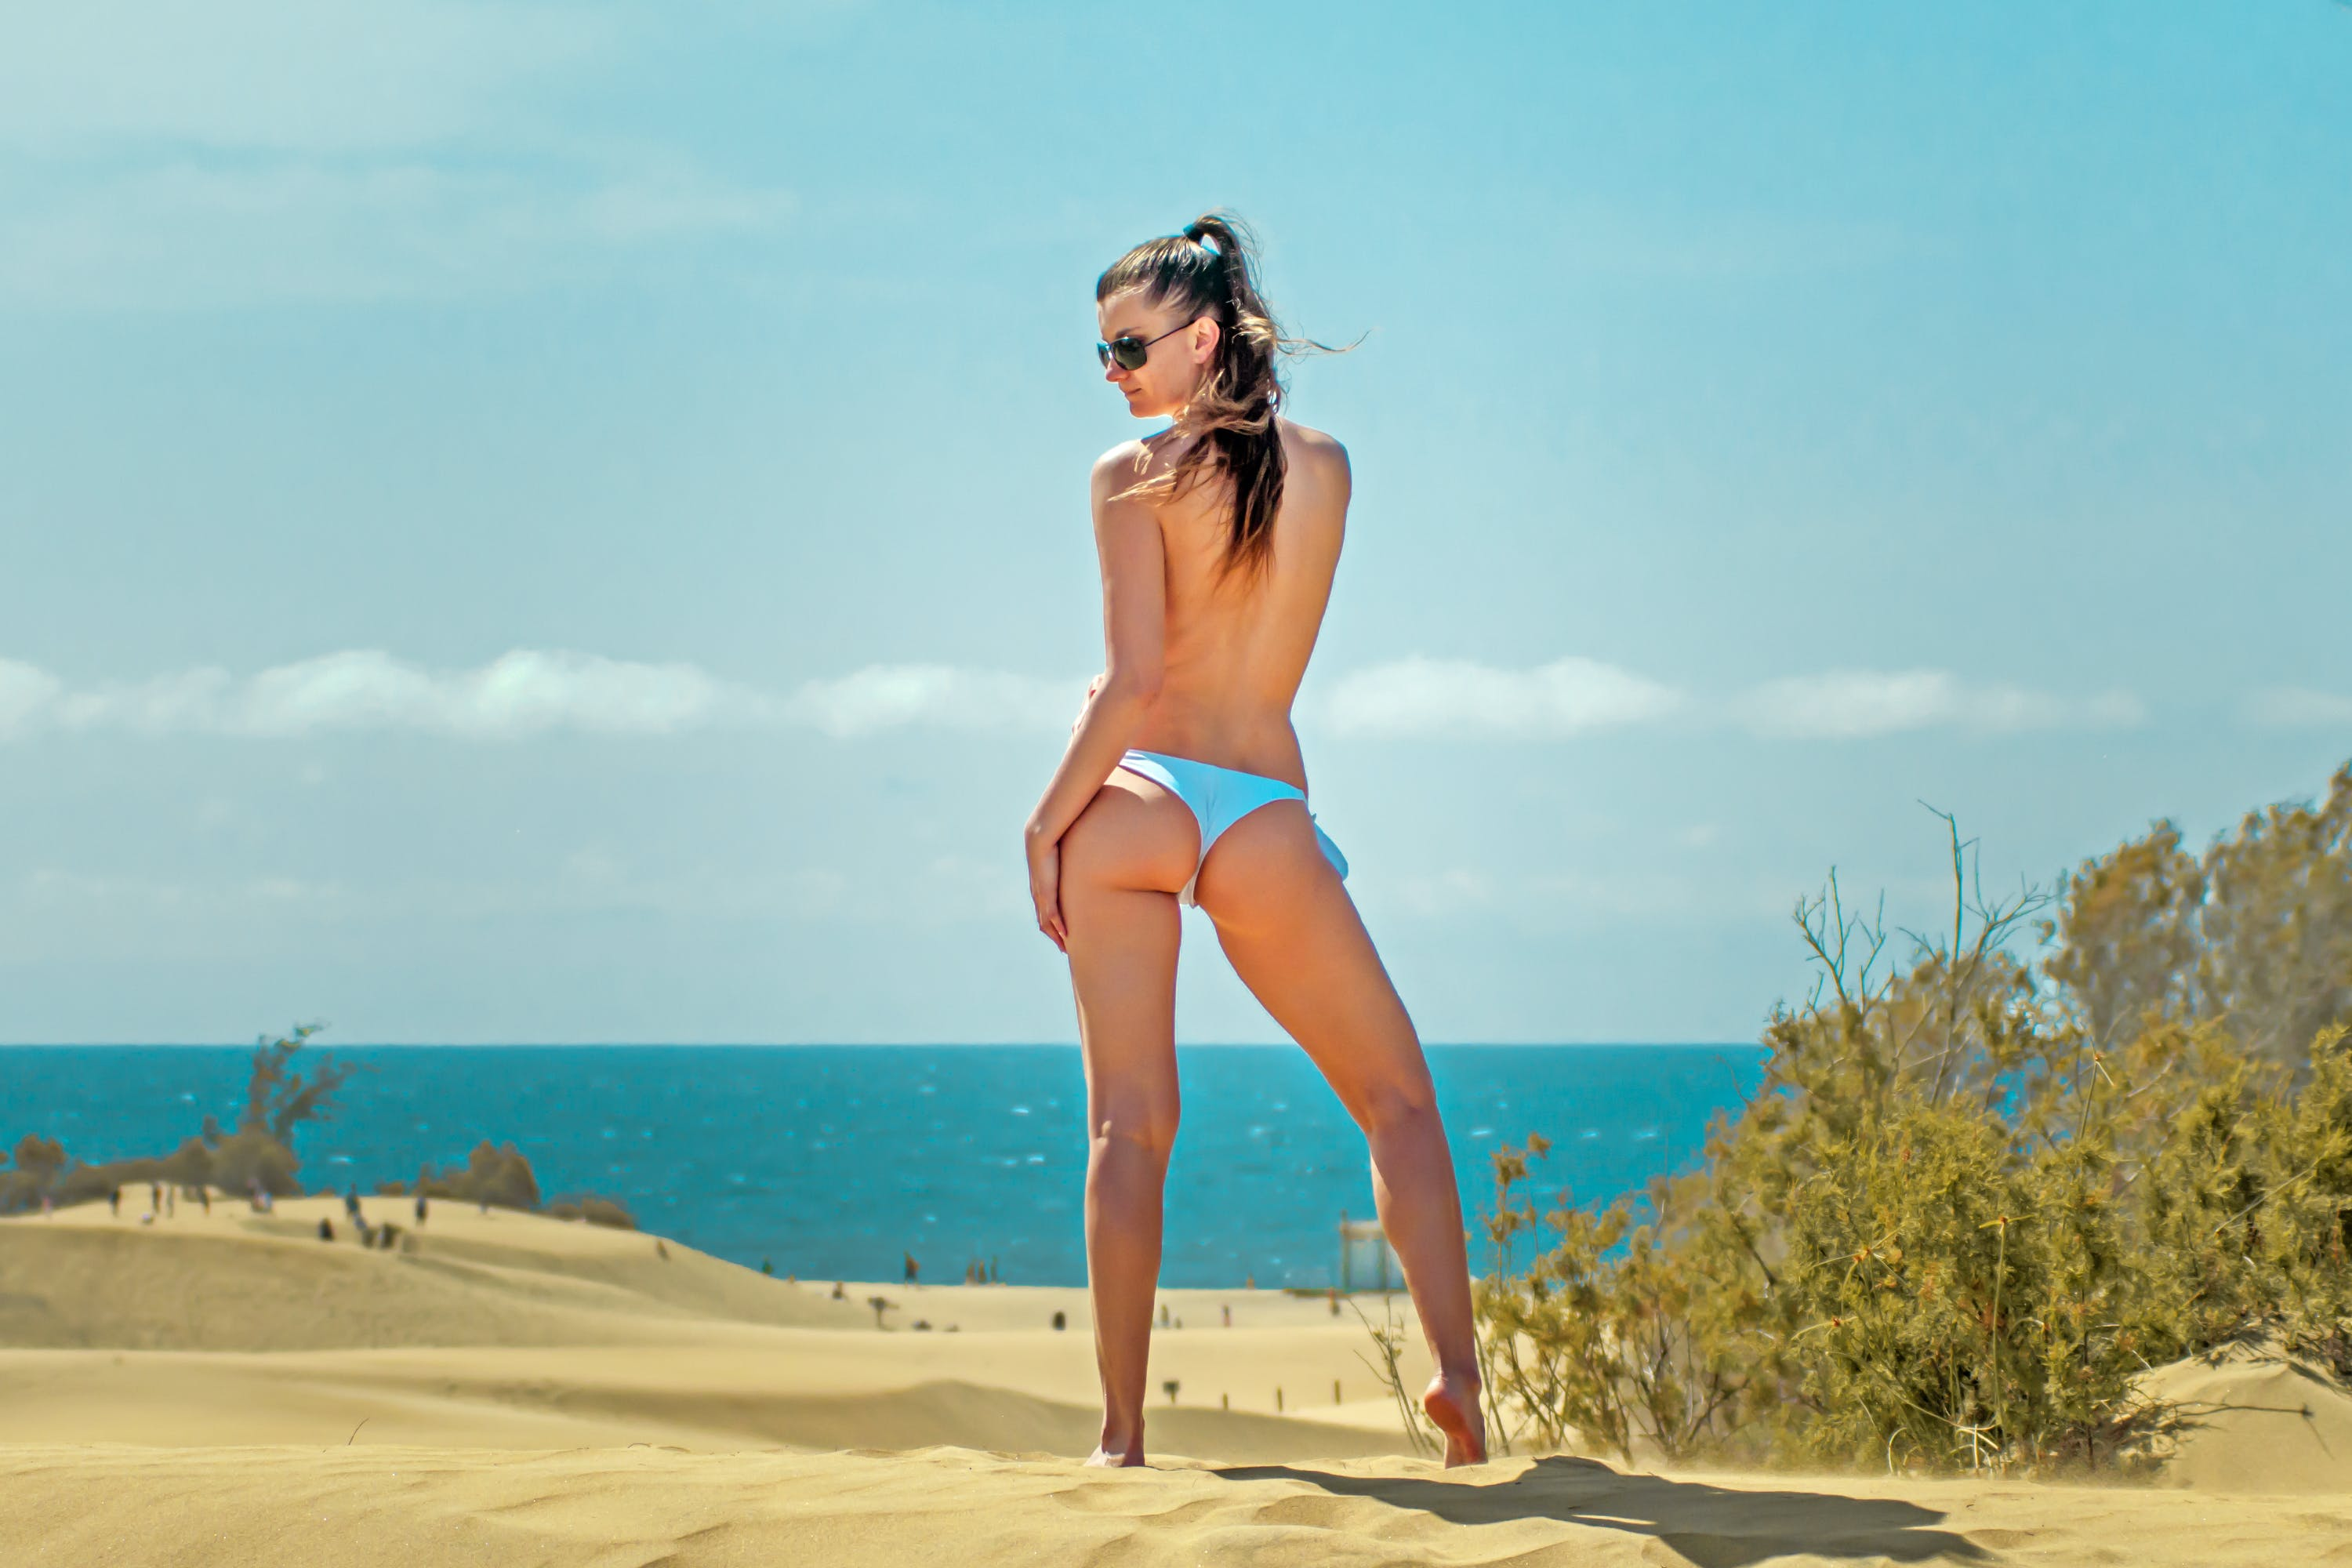 Topless Woman Wearing Blue Pantie Standing on White Sand